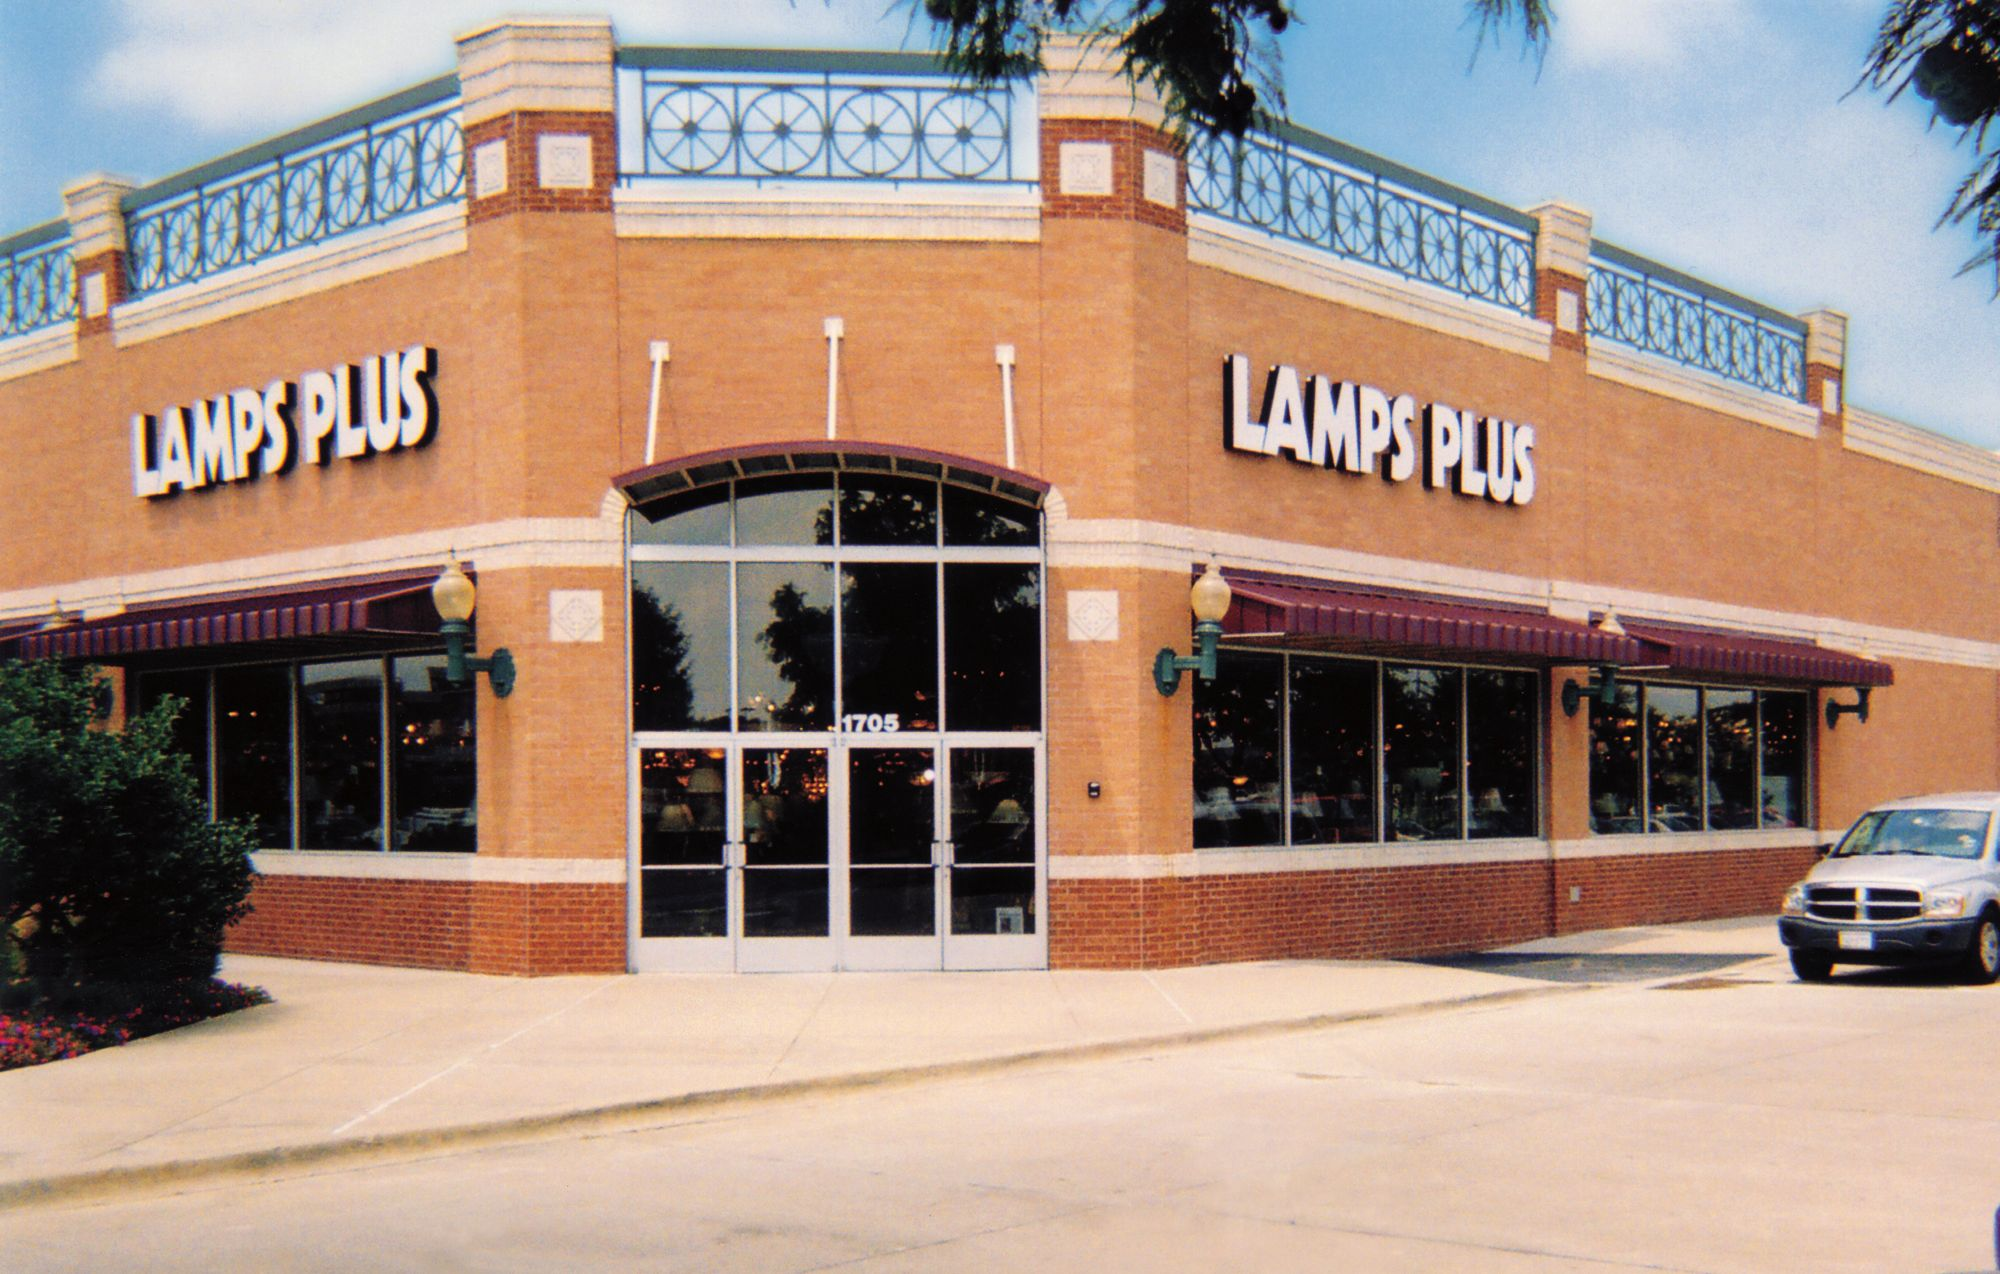 home decor stores plano tx lamps plus plano tx 1705 rd 75093 lighting 12616